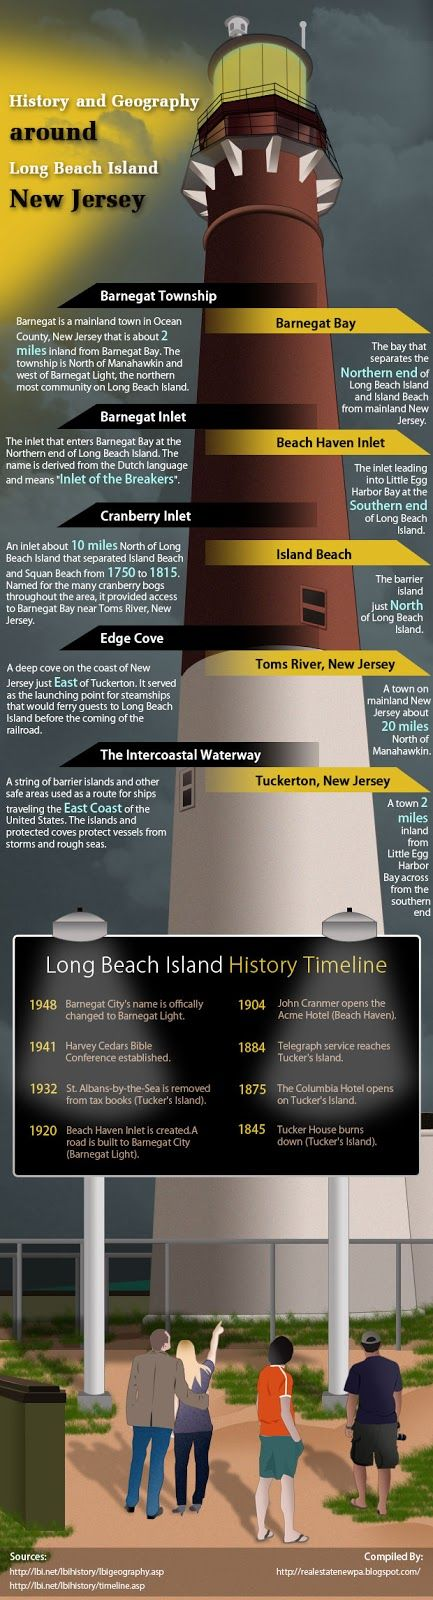 History and Geography Around Long Beach Island New Jersey